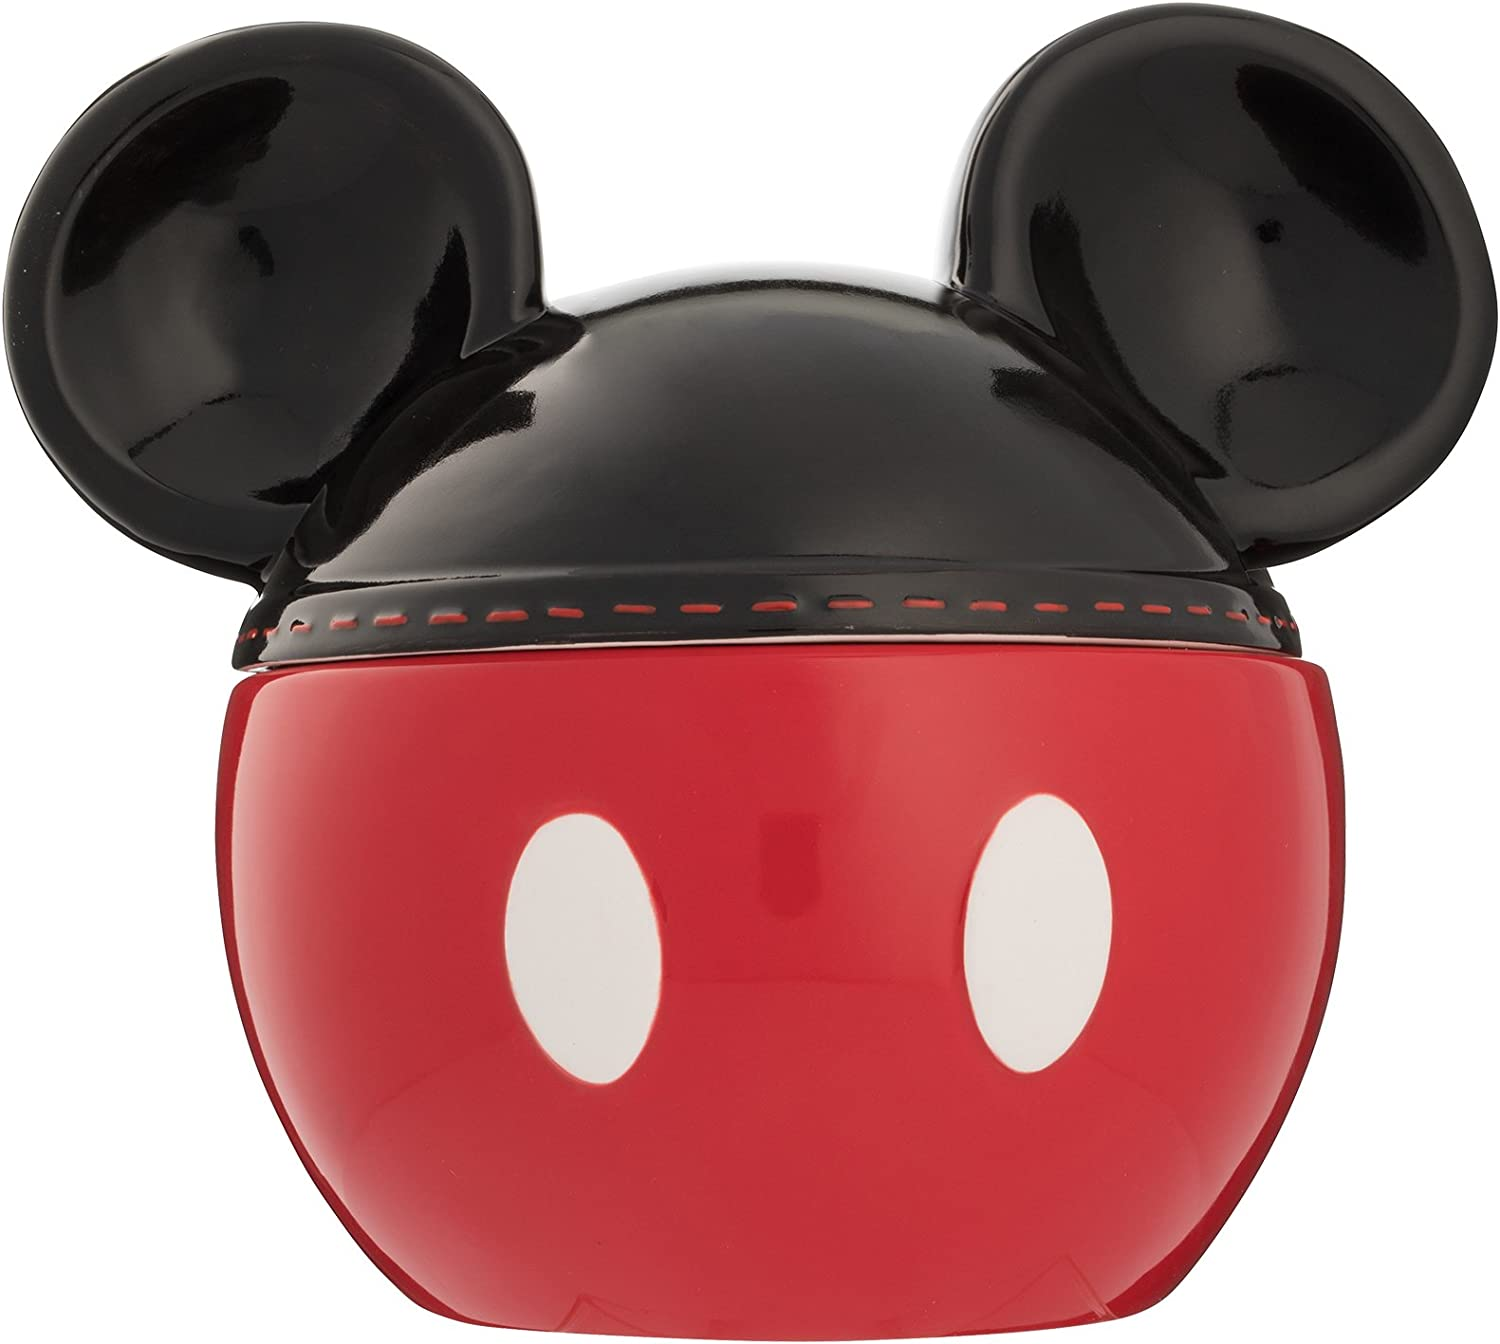 Disney Parks Ceramic Mickey Mouse Gingerbread House Cookie Jar